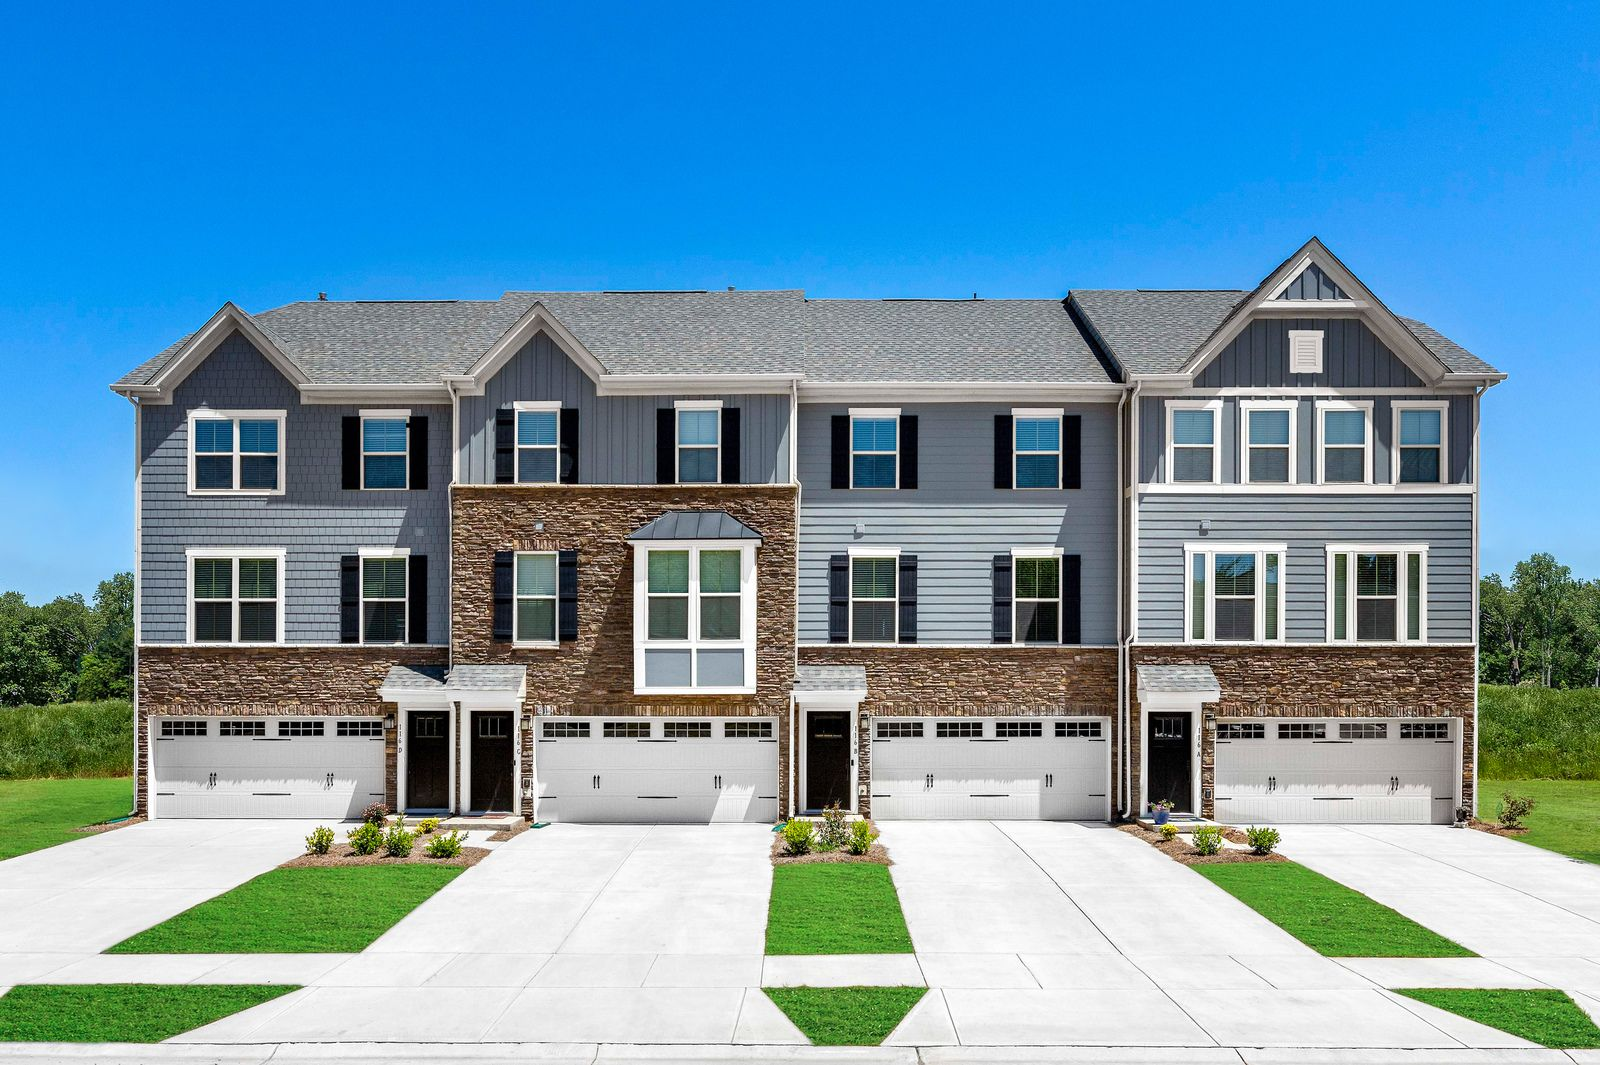 NEW TOWNHOMES WITHIN WALKING DISTANCE TO LAKE NORMAN